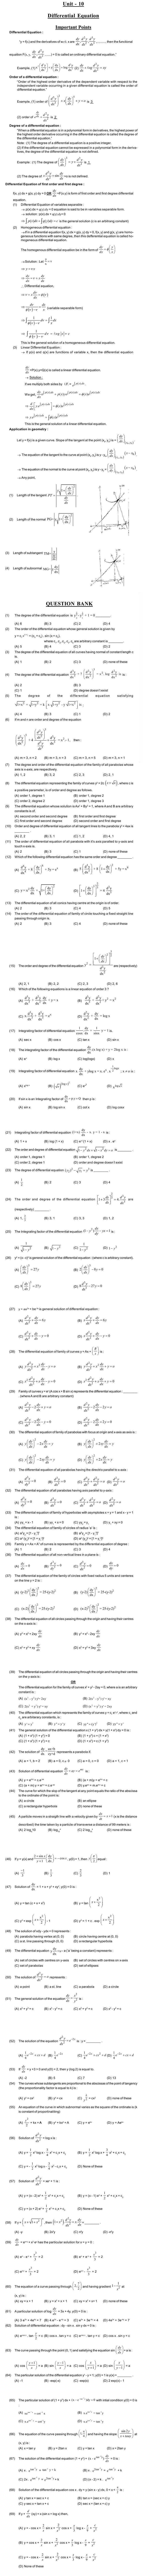 JEE Question Bank Maths - Differential Equation